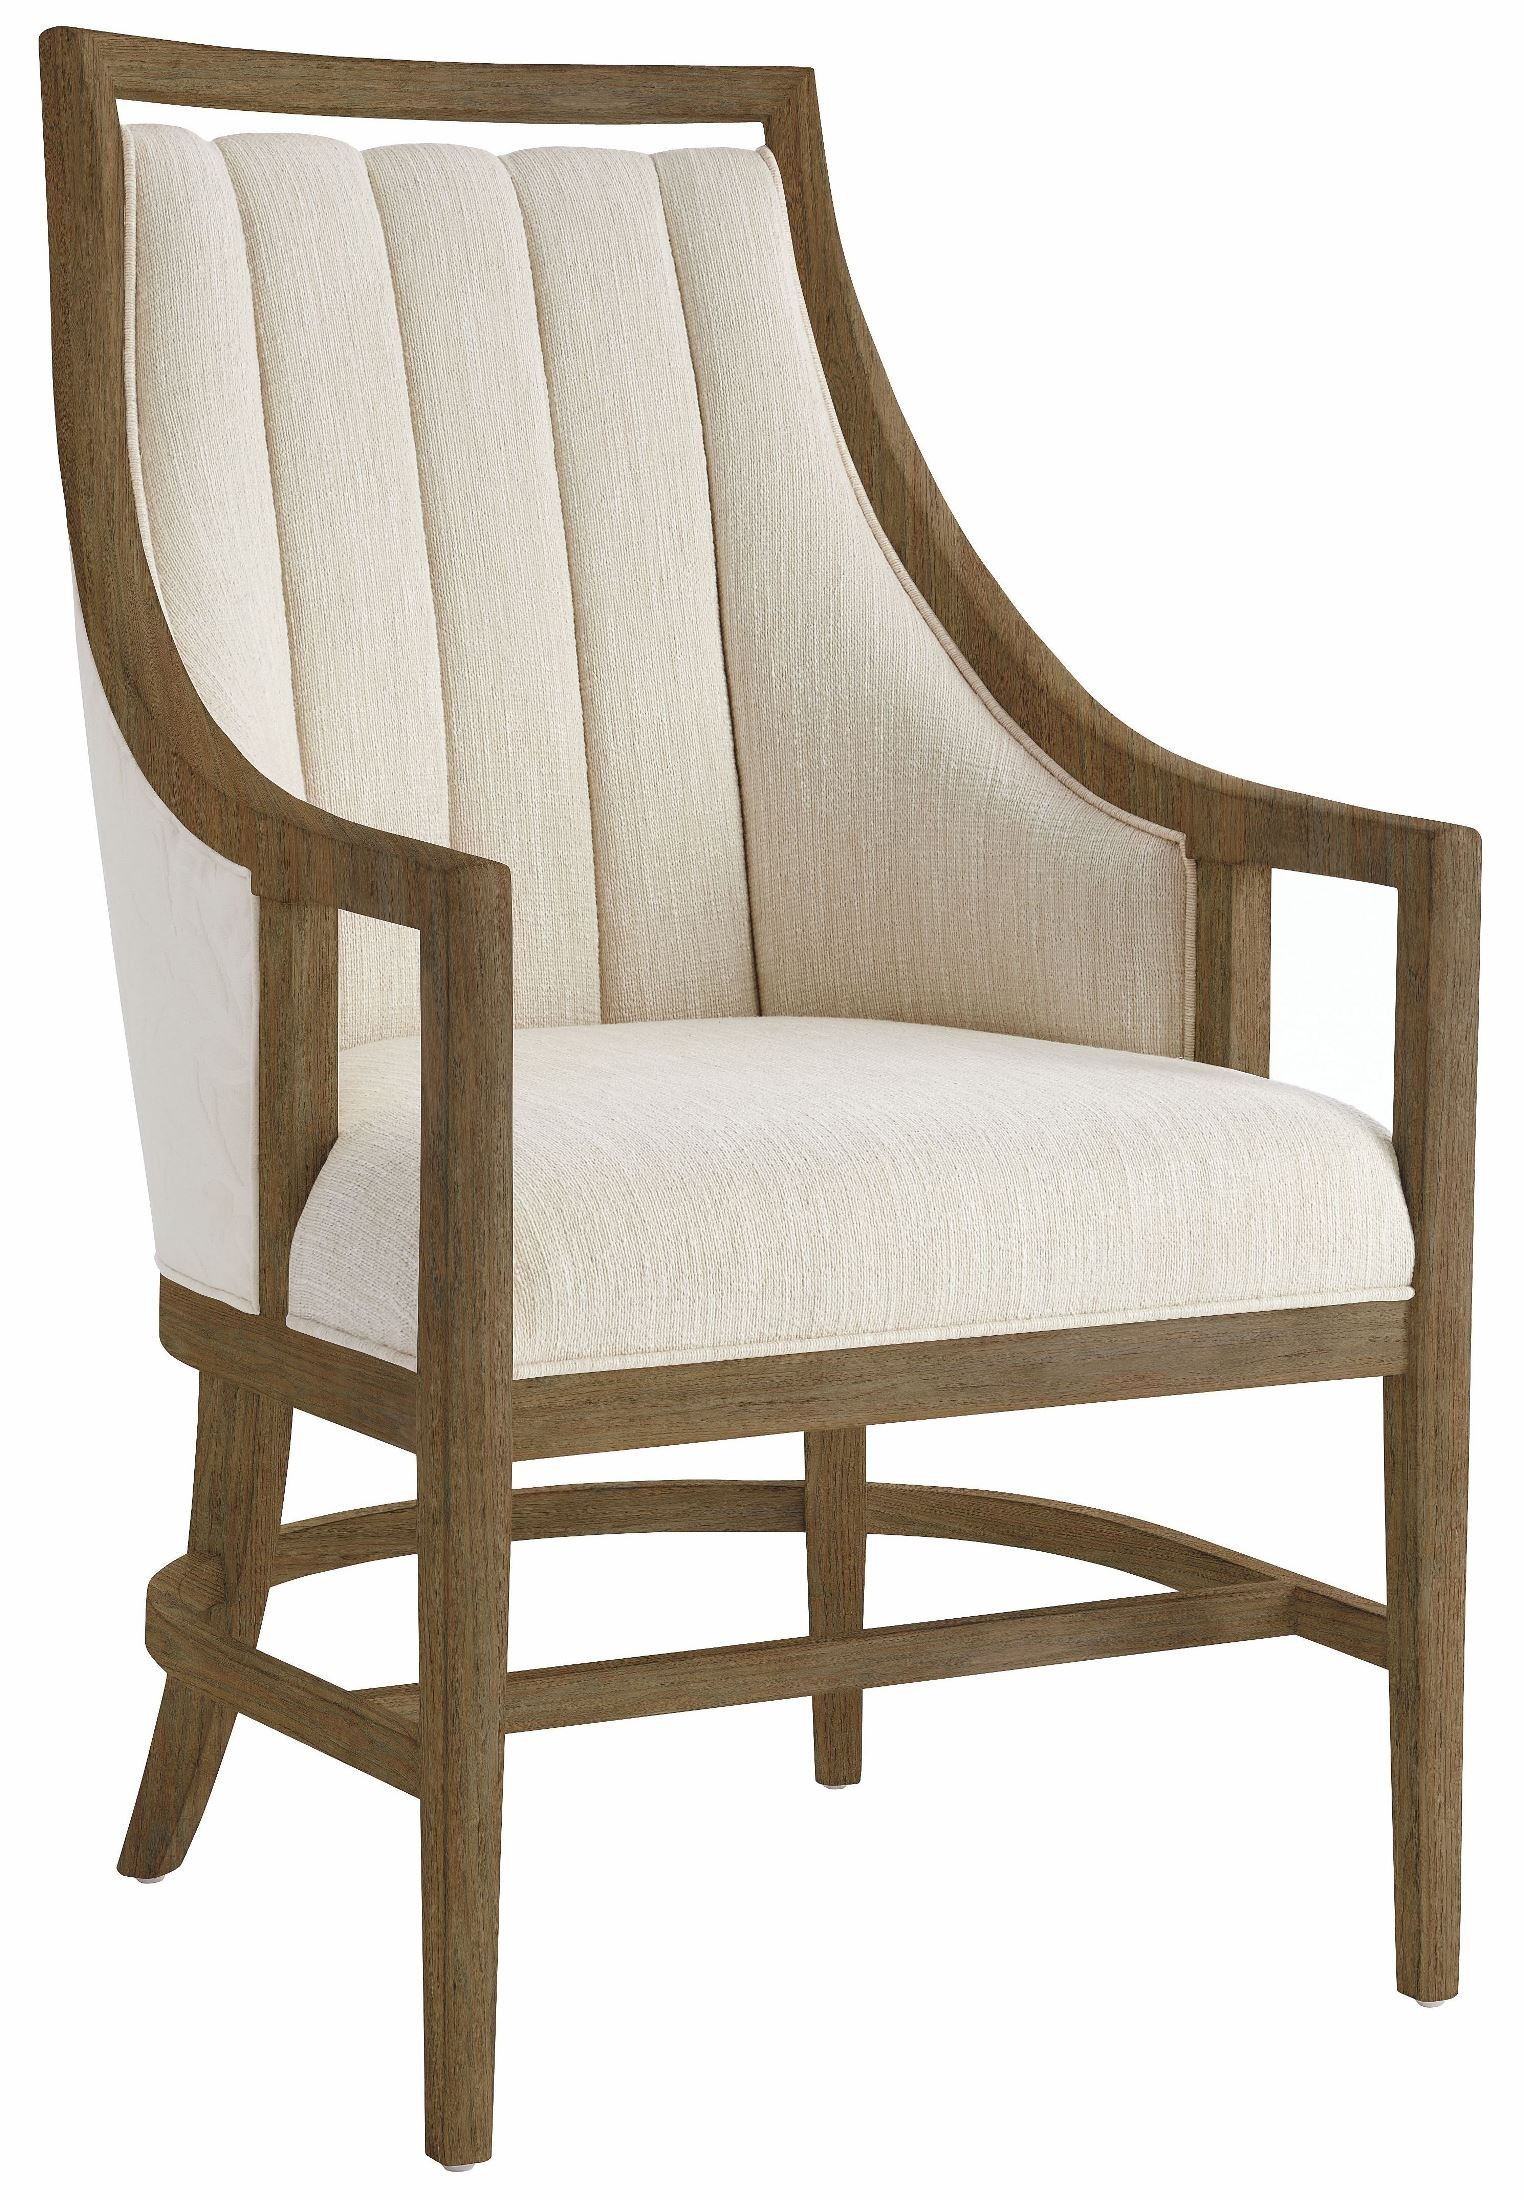 Coastal Living Resort Deck By The Bay Host Chair From